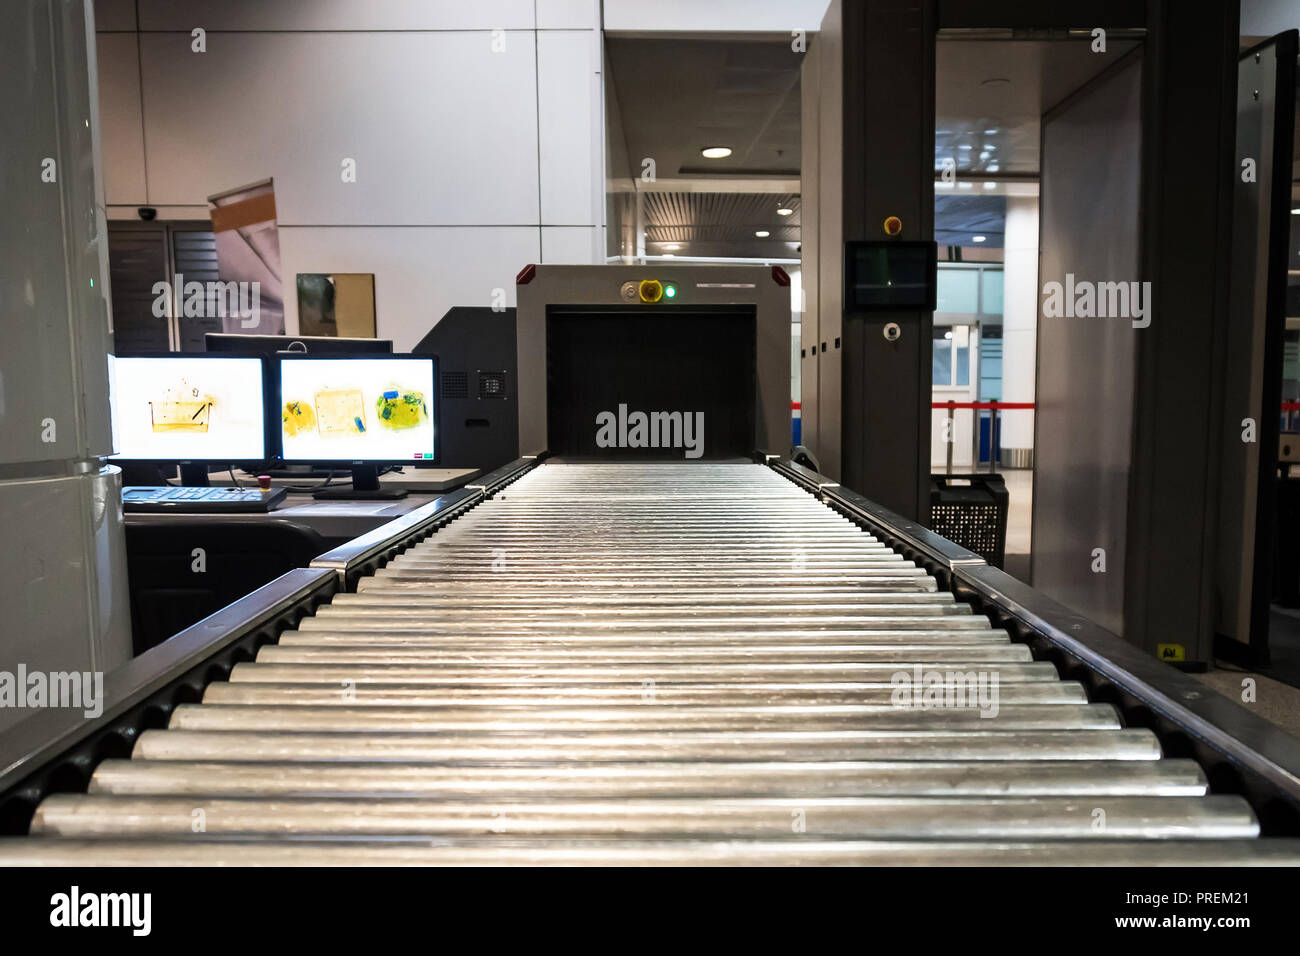 Inspection of personal belongings. Security Service. Scanner for baggage inspection. tape for movement of hand Luggage during scanning at customs at t - Stock Image